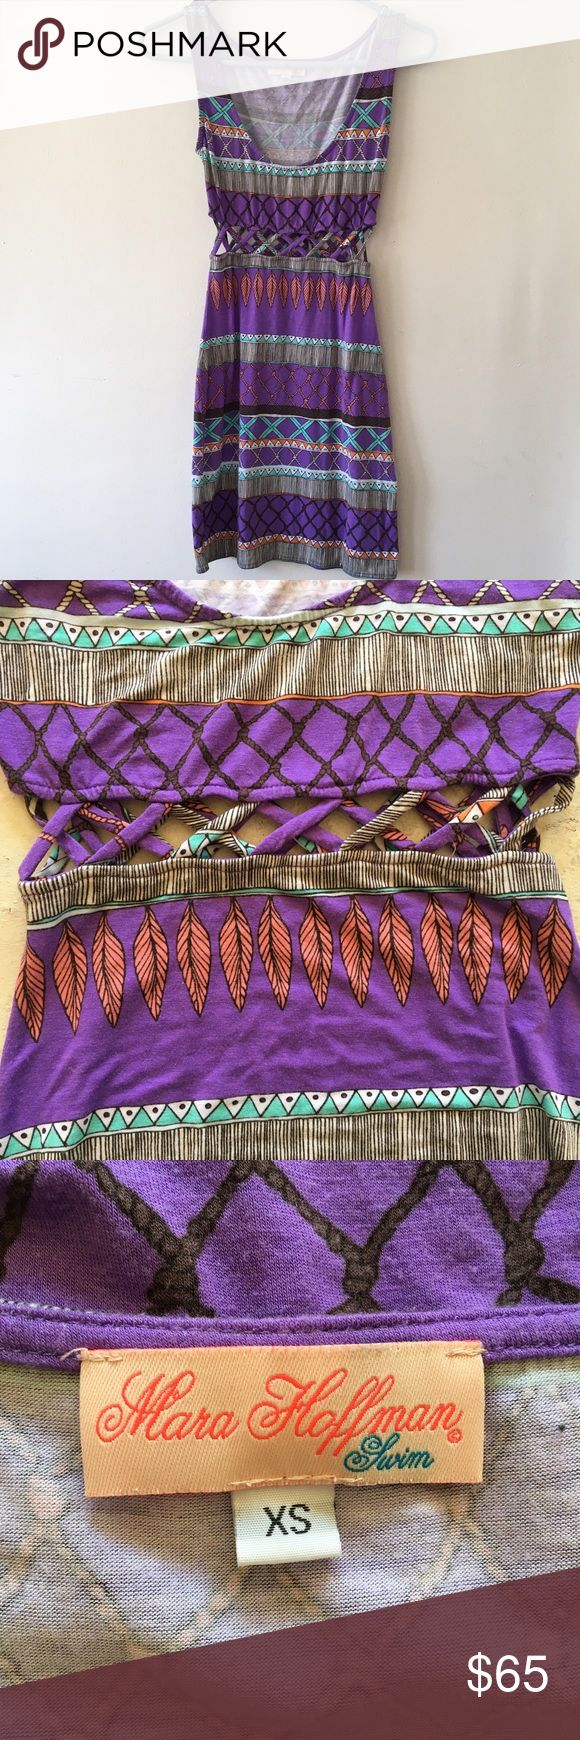 Mara Hoffman Waist Cutout Bodycon Mini Dress NWOT never worn Mara Hoffman mini dress.  Purple, turquoise & orange feather print.  Super soft & lightweight modal/spandex blend.  Lattice cutouts at the waist.  Perfect for summer beach days, music festivals and more!  Love this dress but not quite my color.  Size XS with some stretch that would also fit a small! Mara Hoffman Dresses Mini